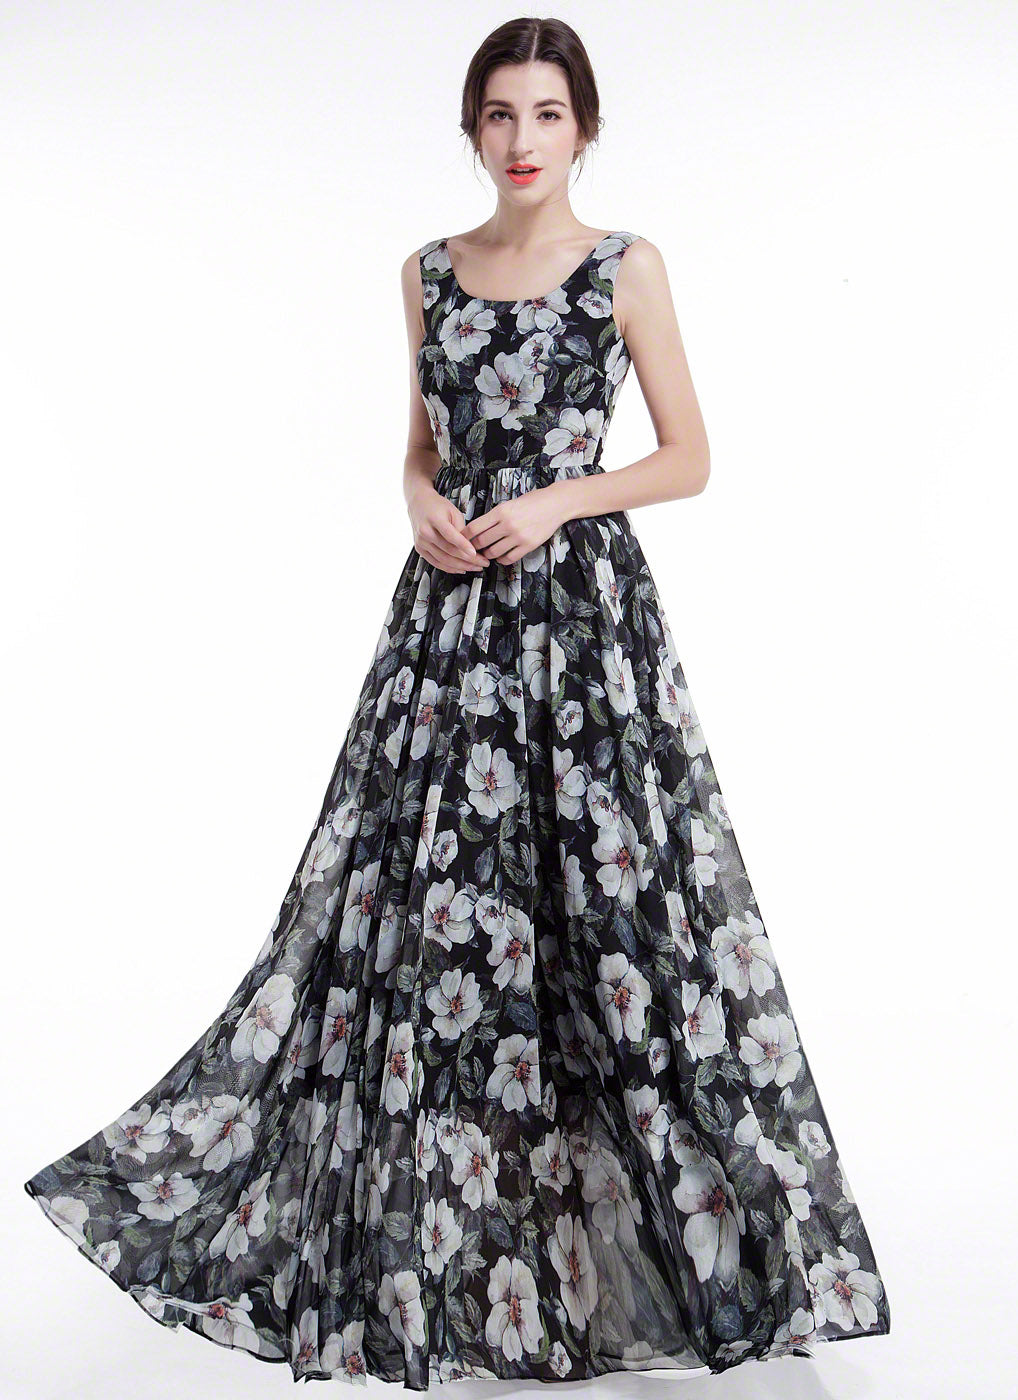 Black Chiffon White Floral Print Maxi Length Evening Dress with Scoop Neck and Wide Hem Skirt